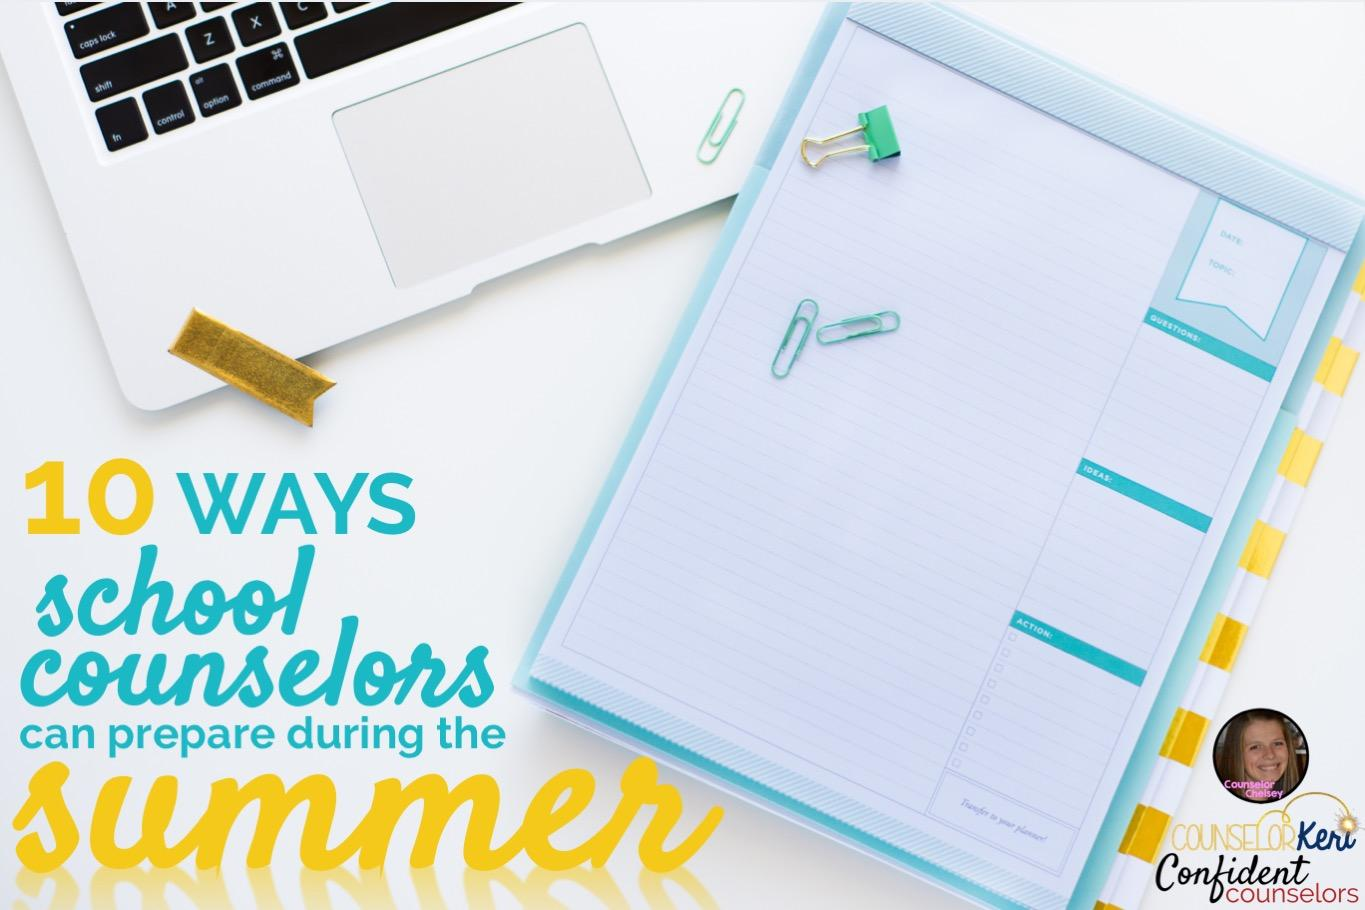 School Counselor Summer Prep. 10 ways to prepare this summer to ensure their year is off to a great, confident start. #schoolcounselorprep